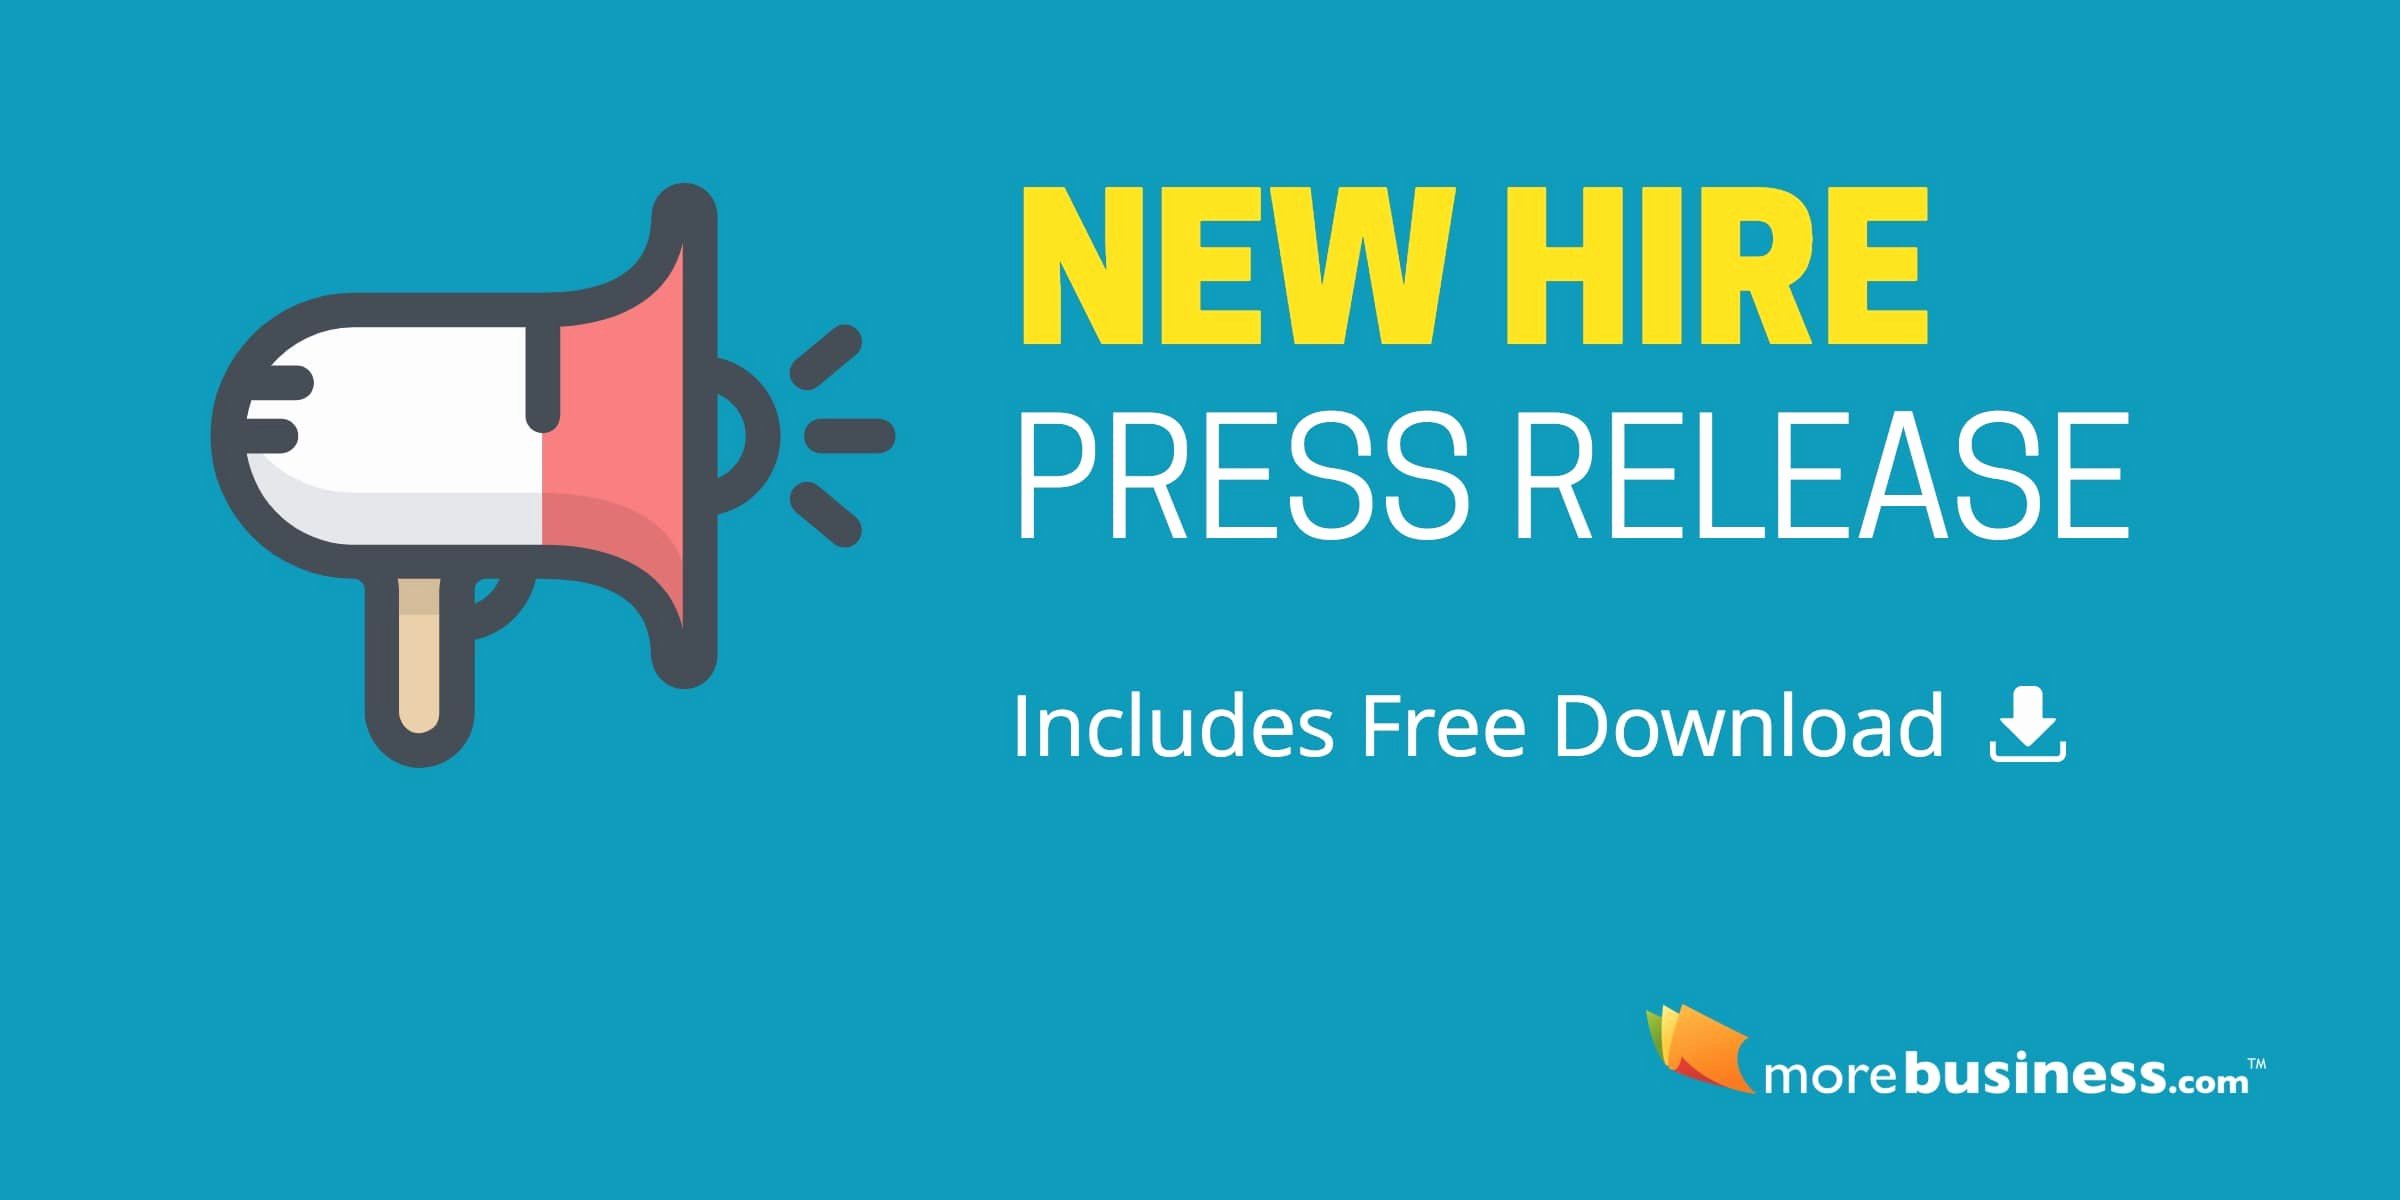 New Hire Press Release Copy Paste This format and Example